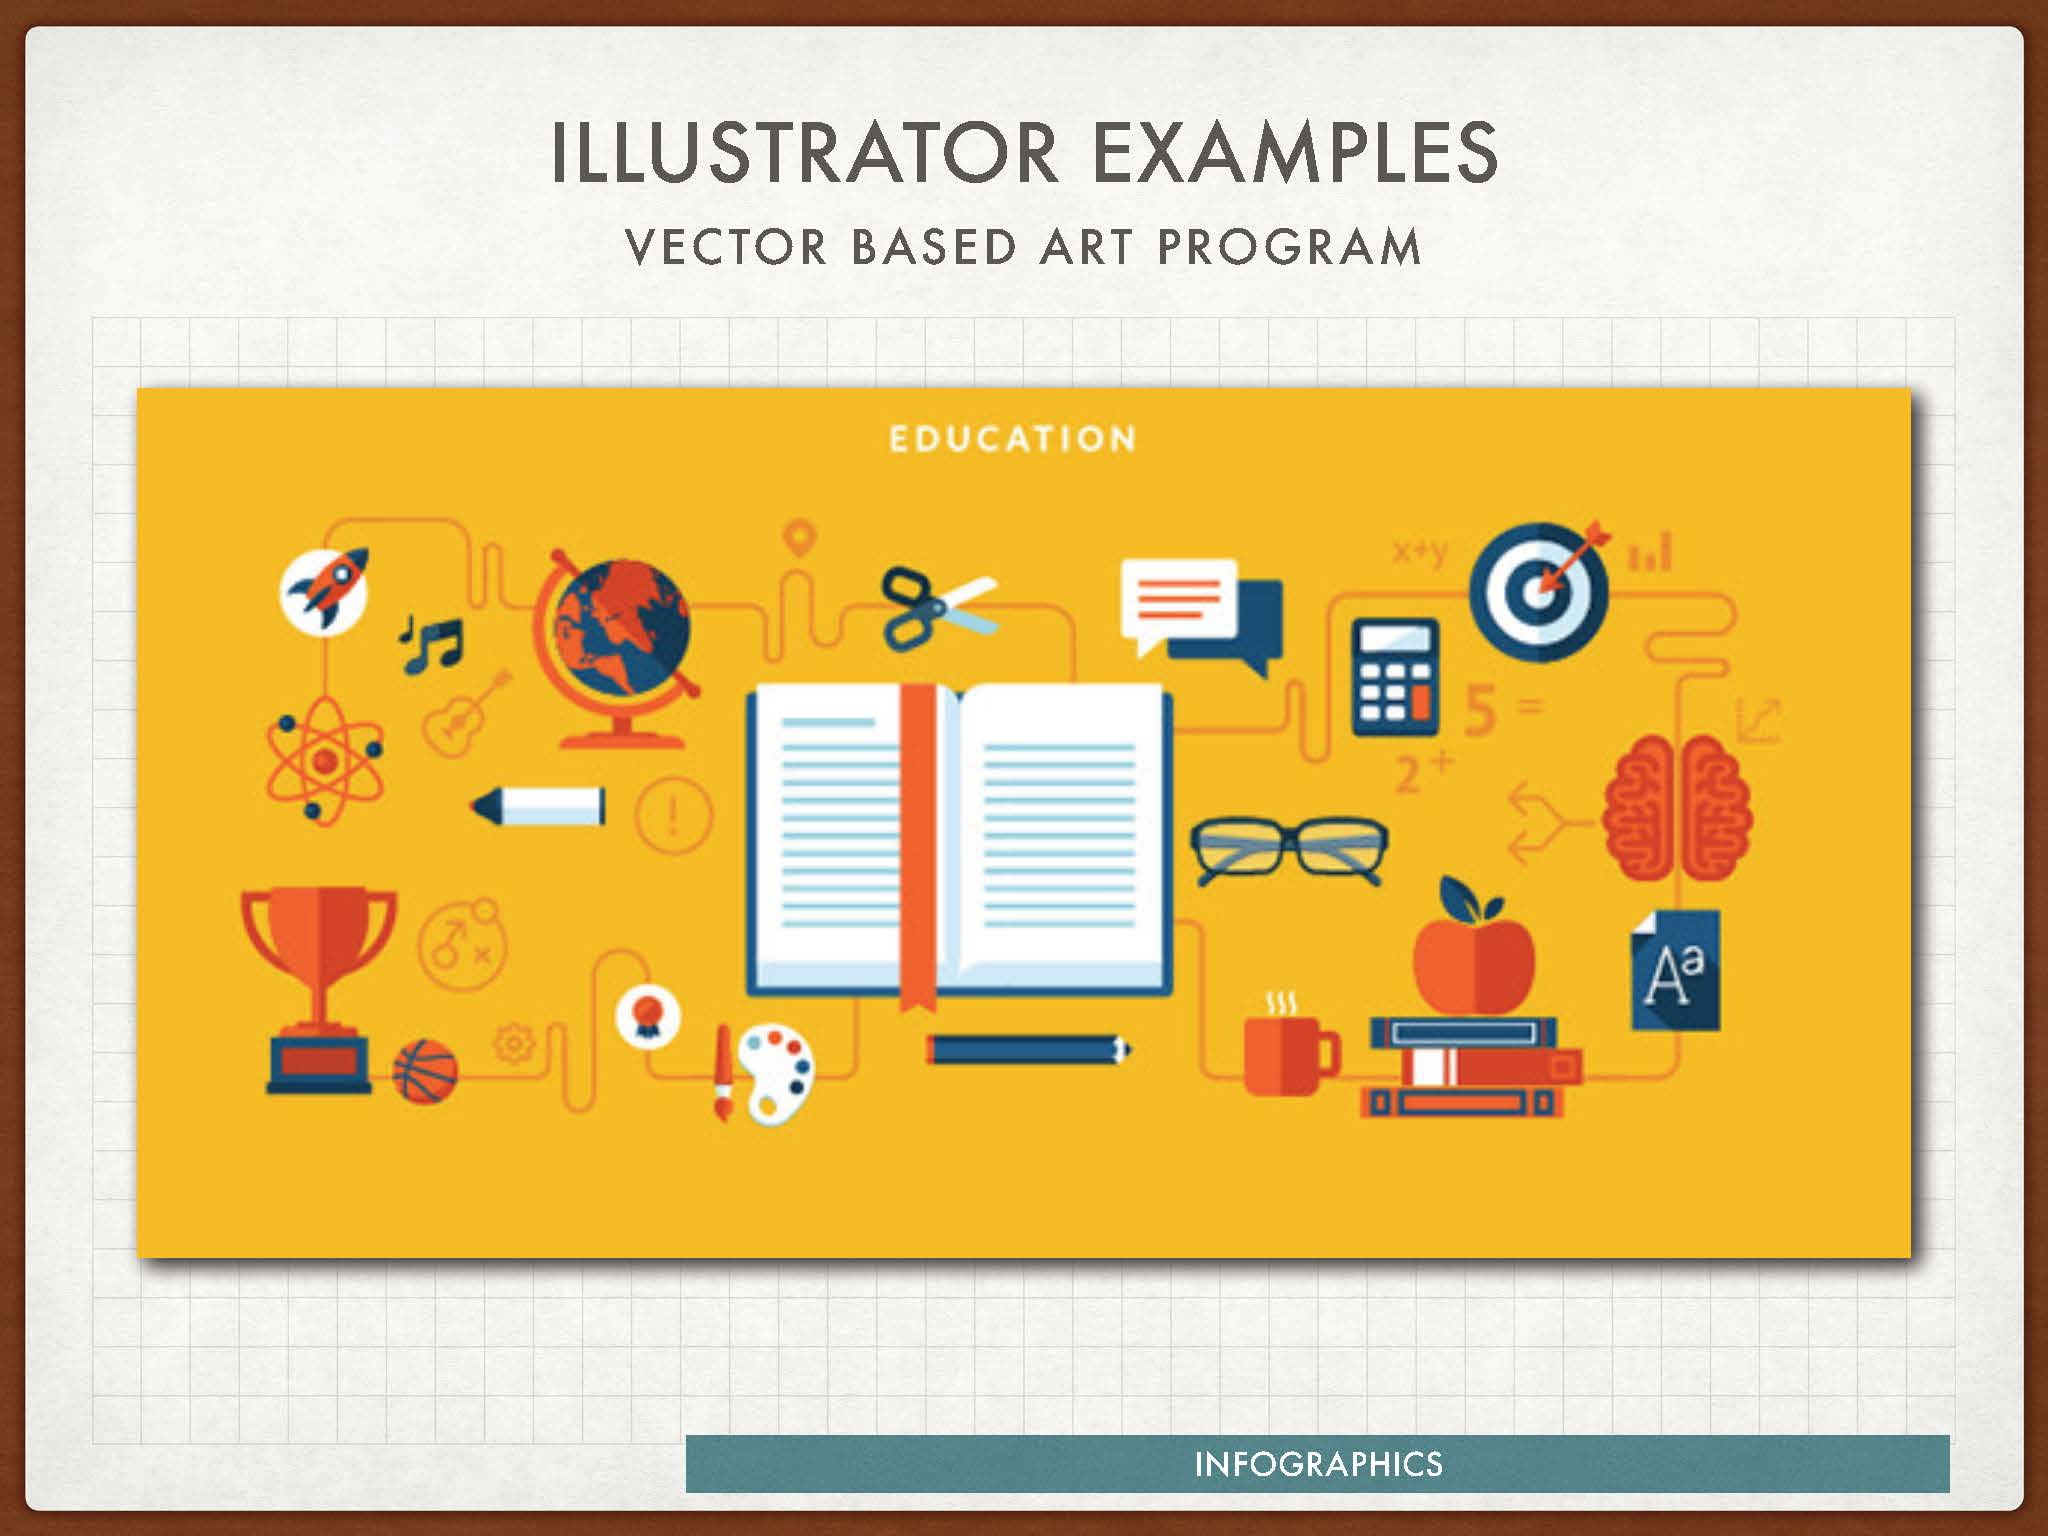 Infographic as example of Illustrator vector art.